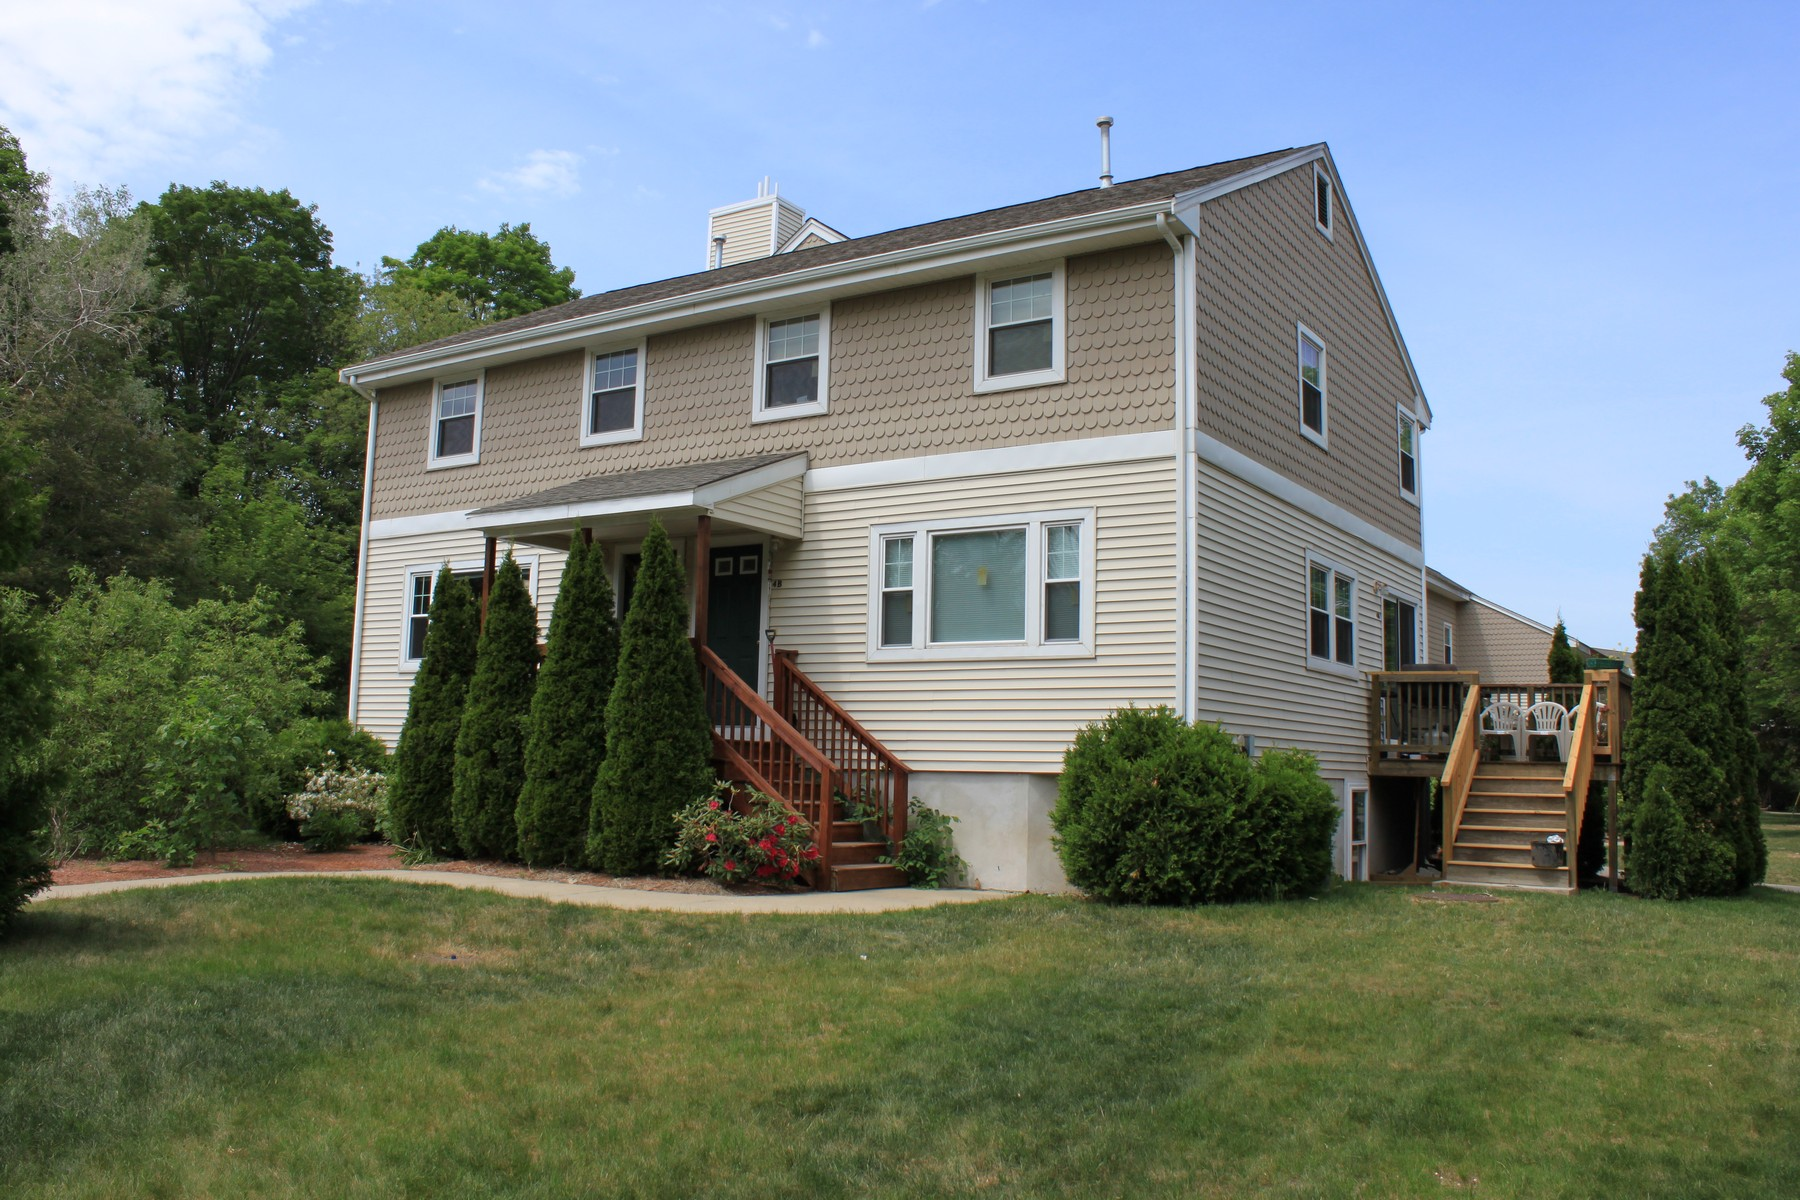 Condominium for Sale at Three Bedroom Townhouse 4A Mayberry Street Westborough, Massachusetts 01581 United States